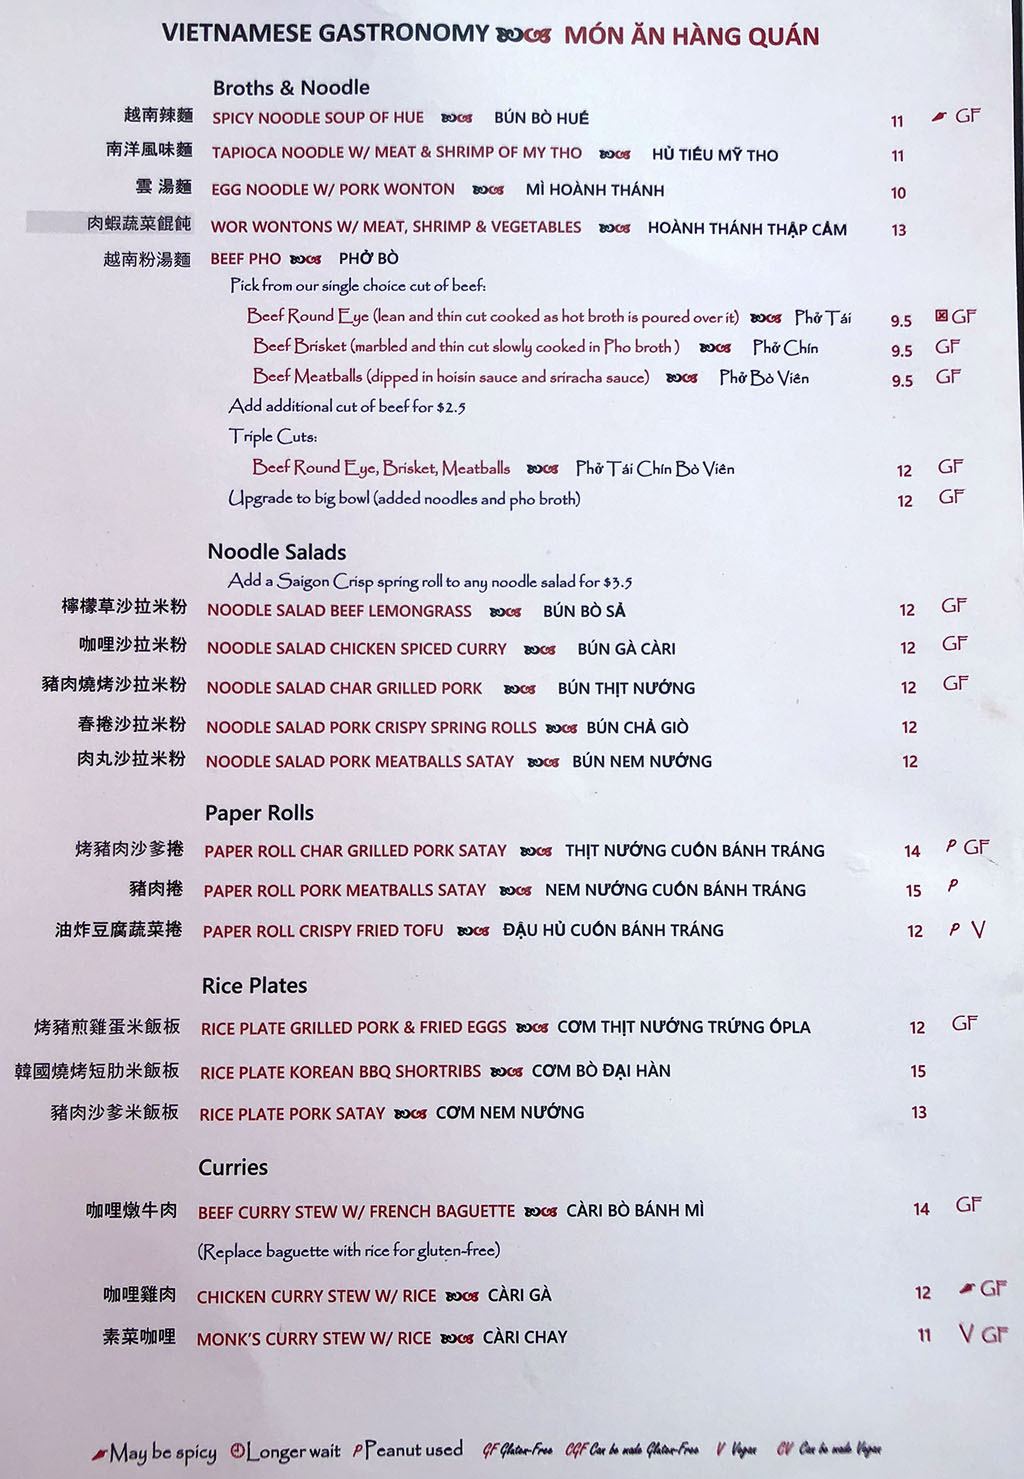 Indochine Vietnamese Bistro menu - borth and noodle, noodle salads, paper rolls, rice plates, curries